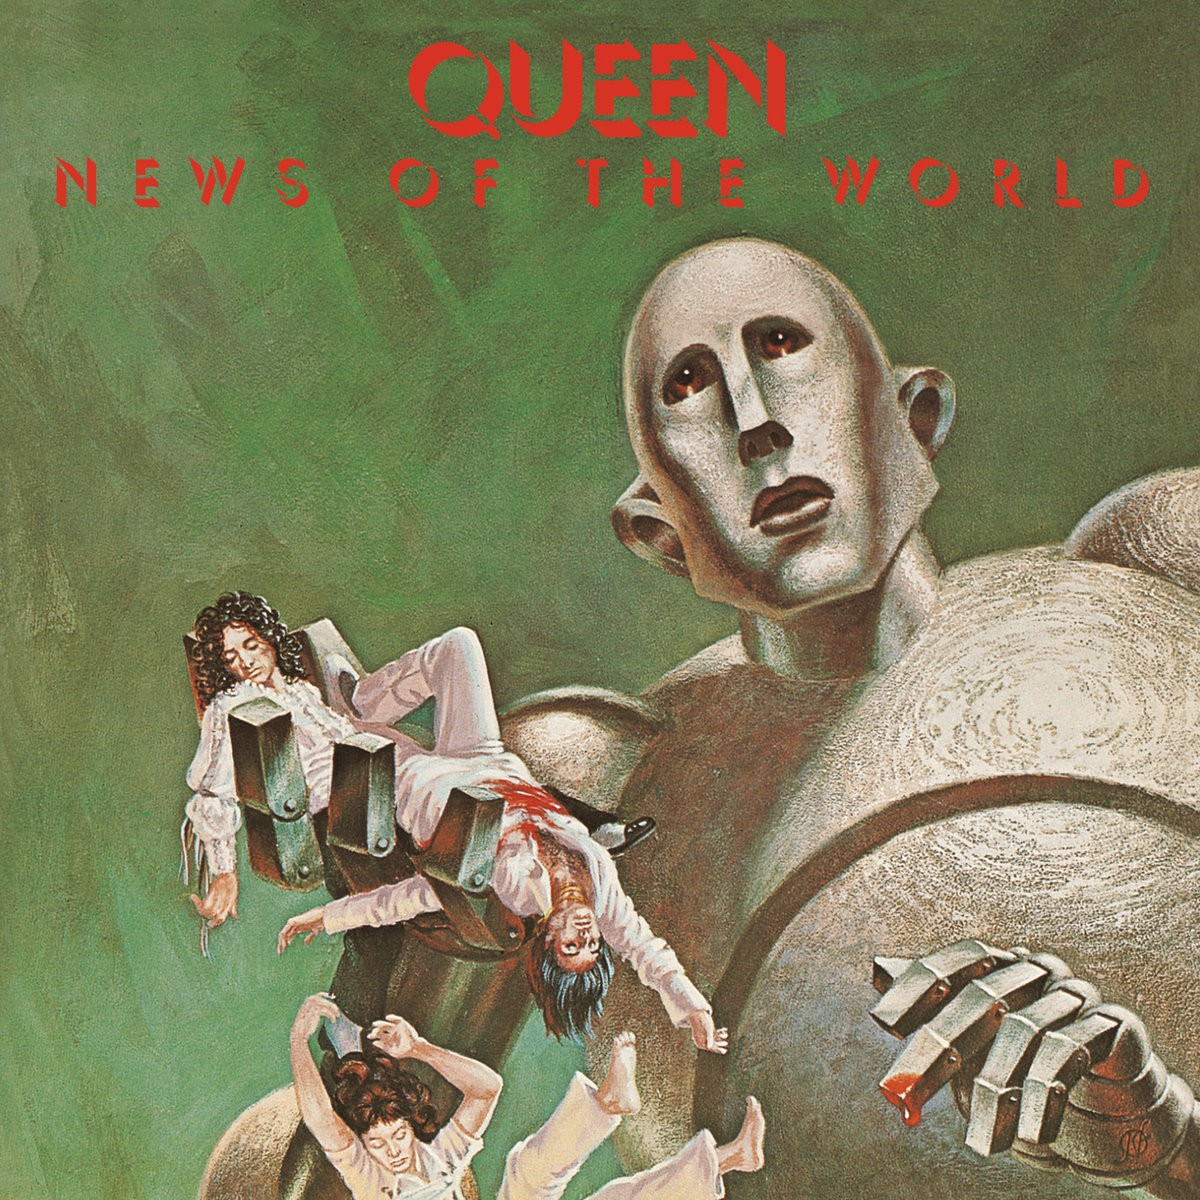 Queen - News of the World VINYL - 06025 4720272